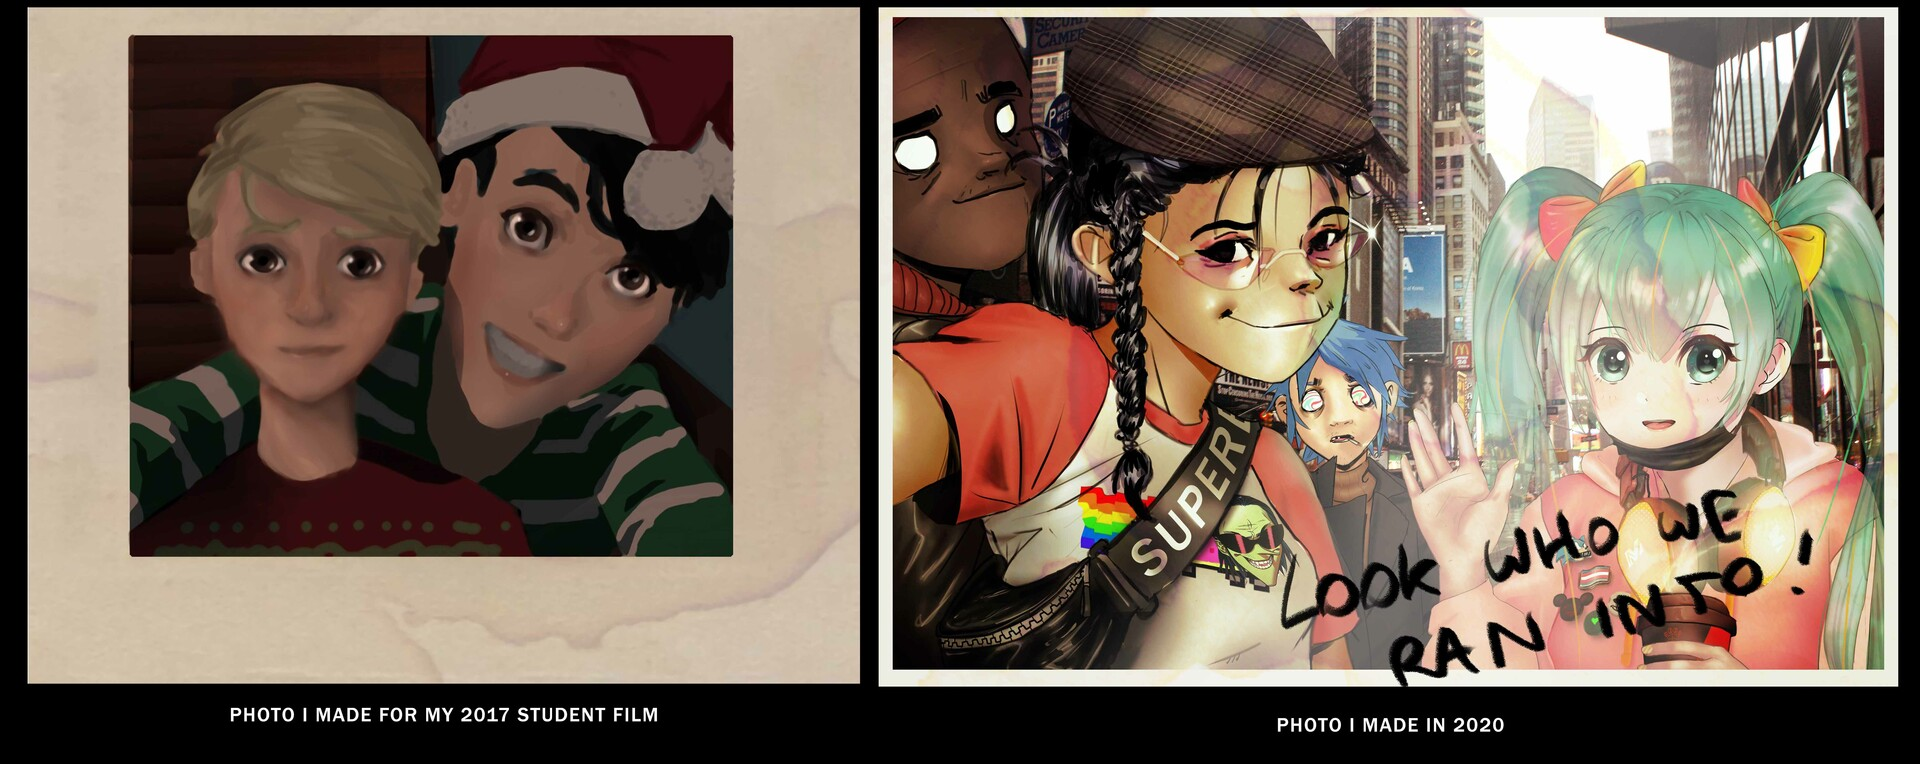 Not Gorillaz related but for me..